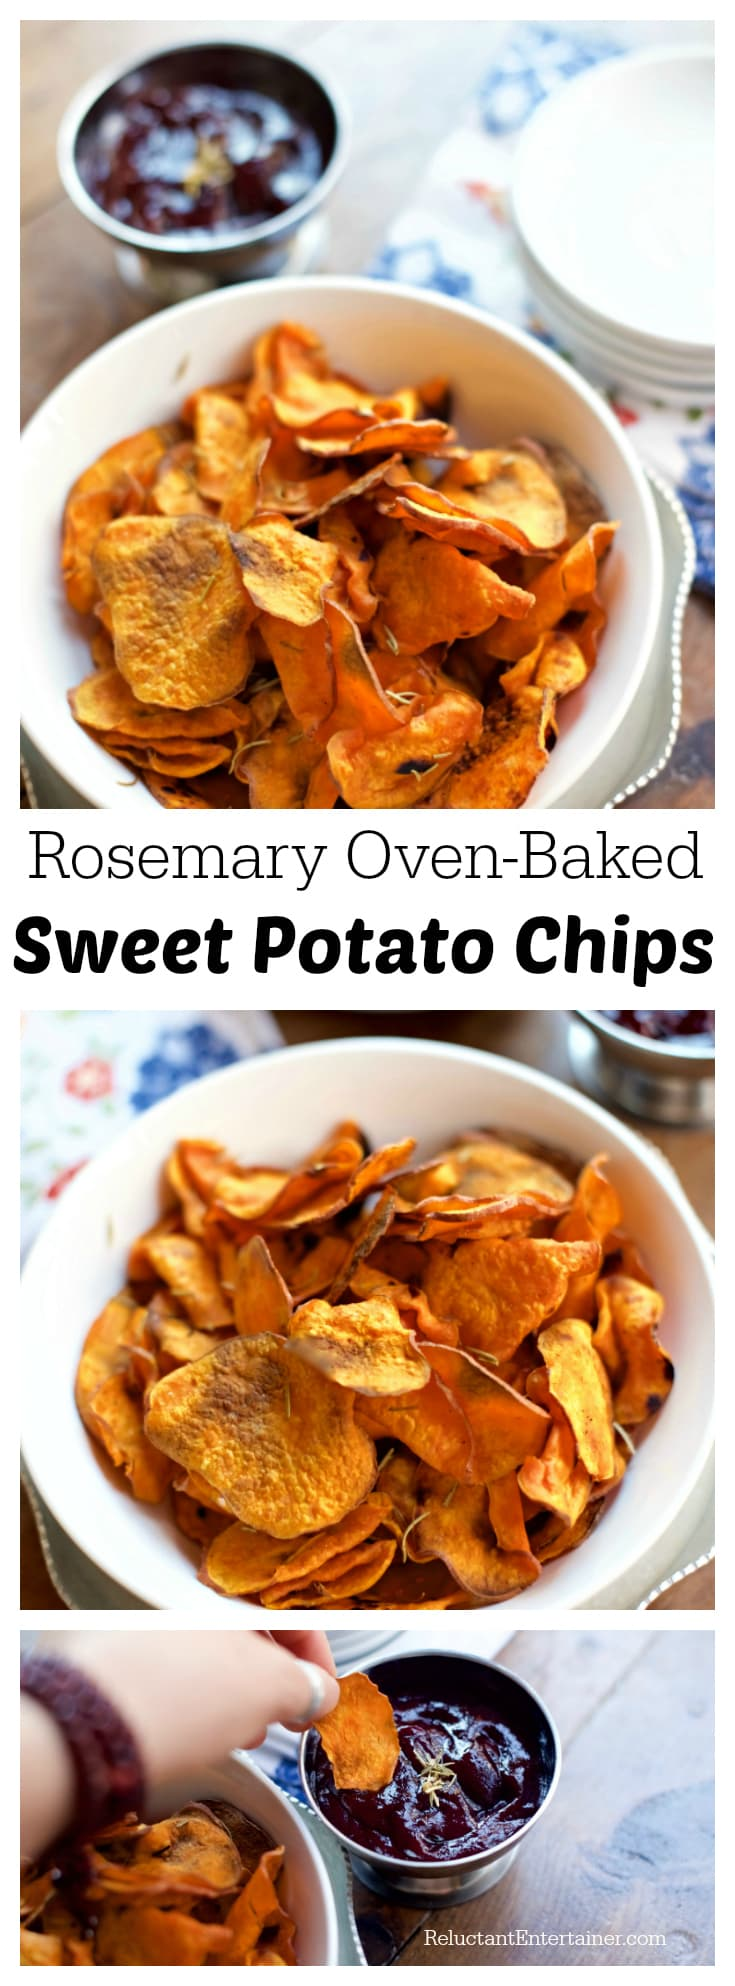 Rosemary Oven Baked Sweet Potato Chips Reluctant Entertainer